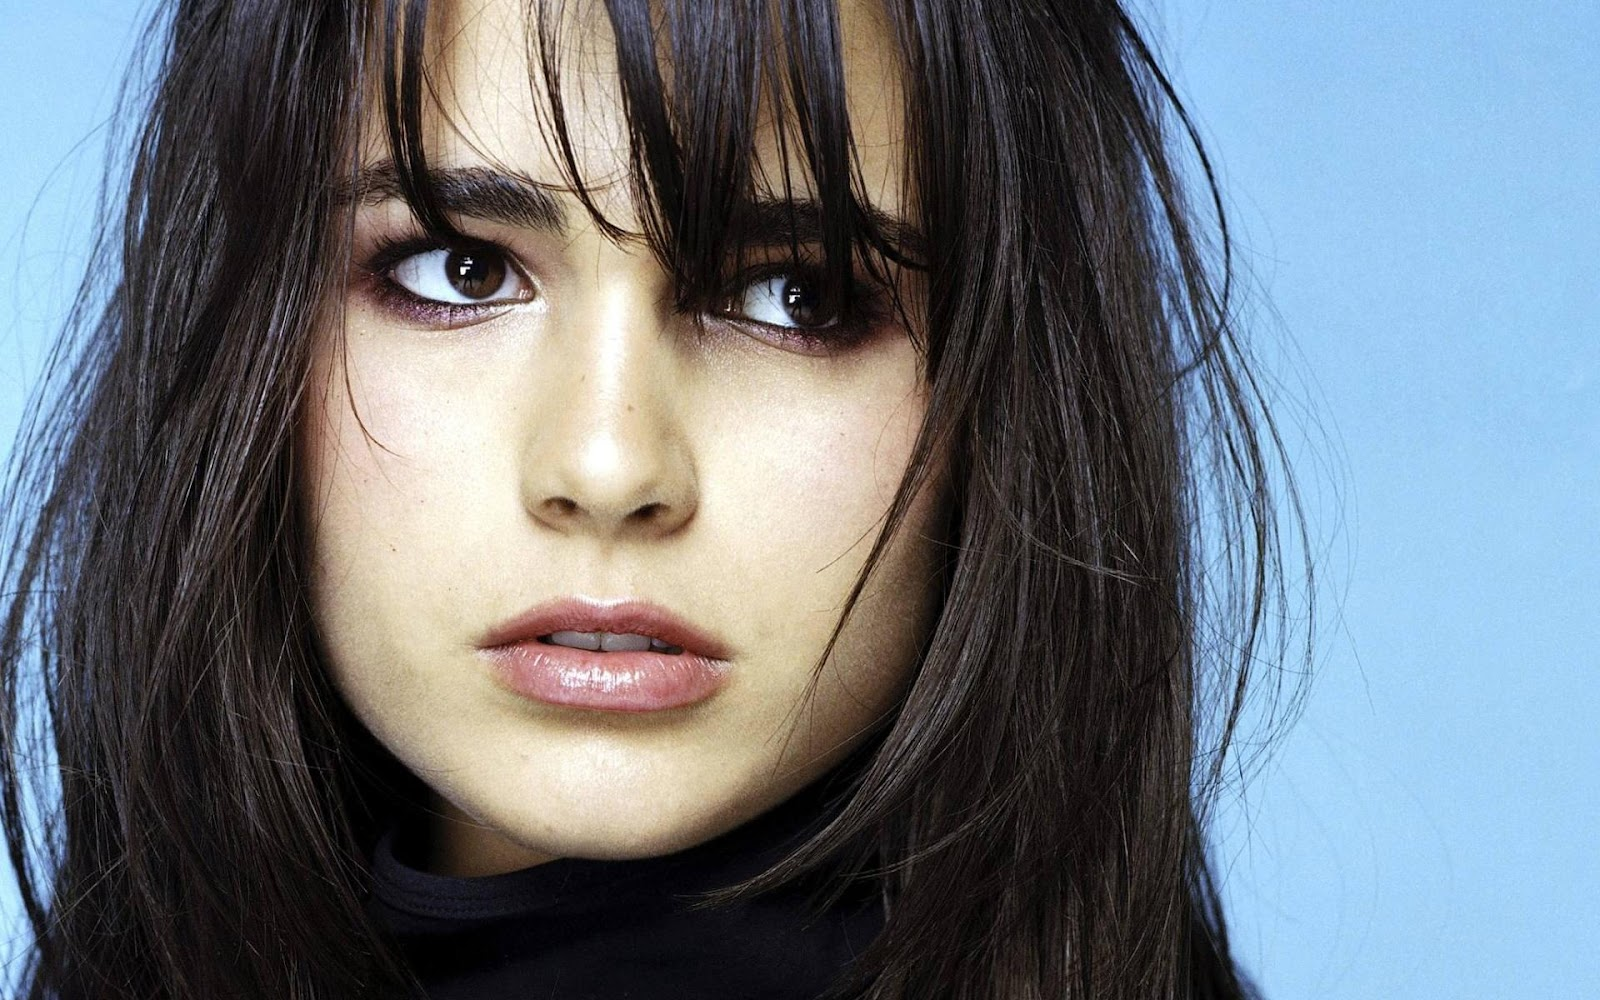 Macintosh HD:Users:nataliewright:Downloads:women-close-up-actress-long-hair-celebrity-jordana-brewster-blue-background-bangs-fresh-hd-wallpaper.jpg